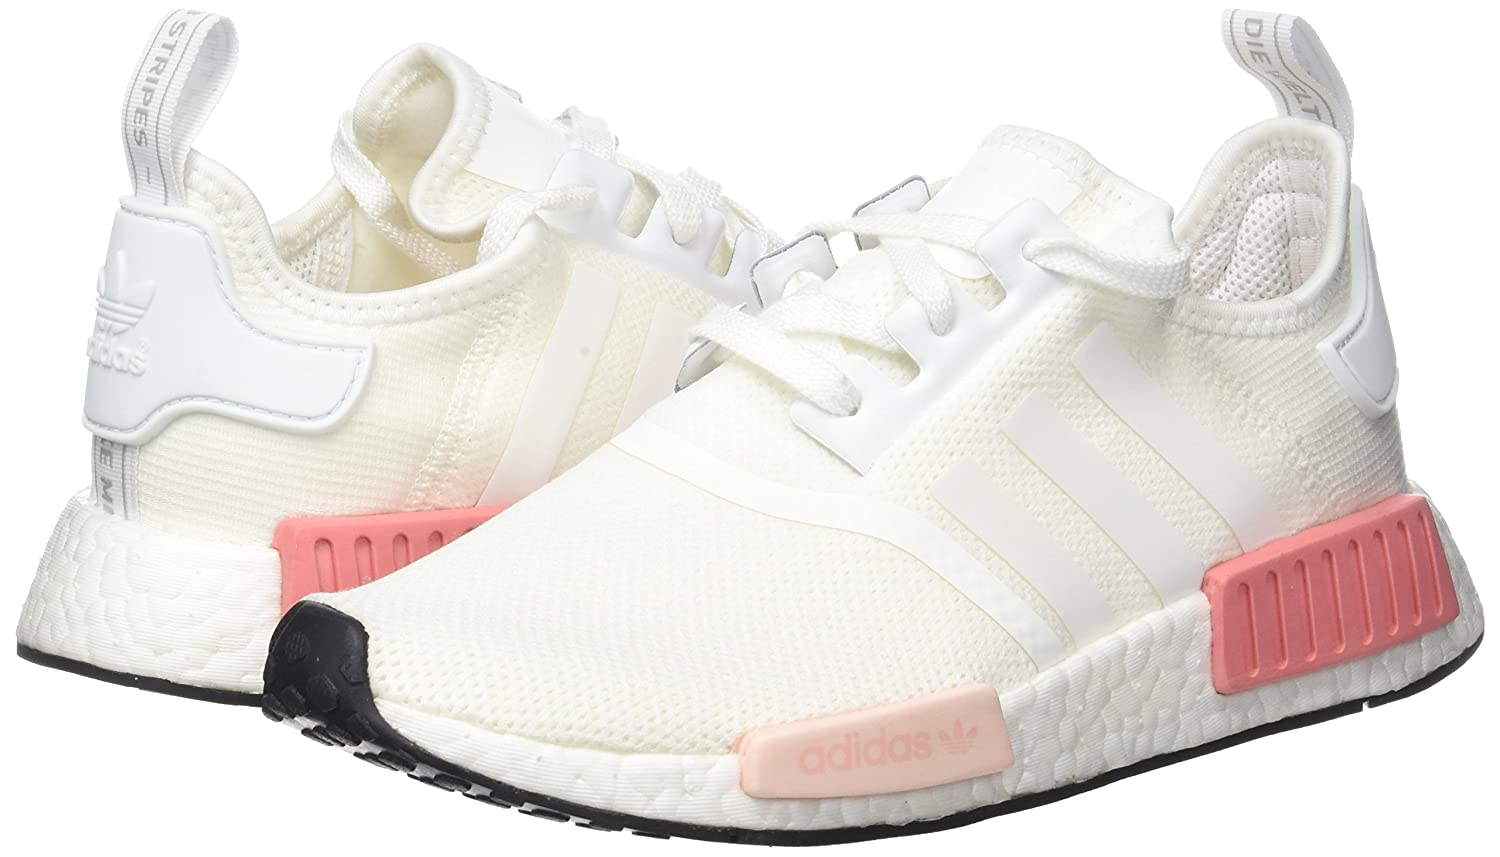 f392ca66d ... where to buy amazon adidas nmdr1 w by9952 color pink white size 8.0  shoes 56c09 1ef69